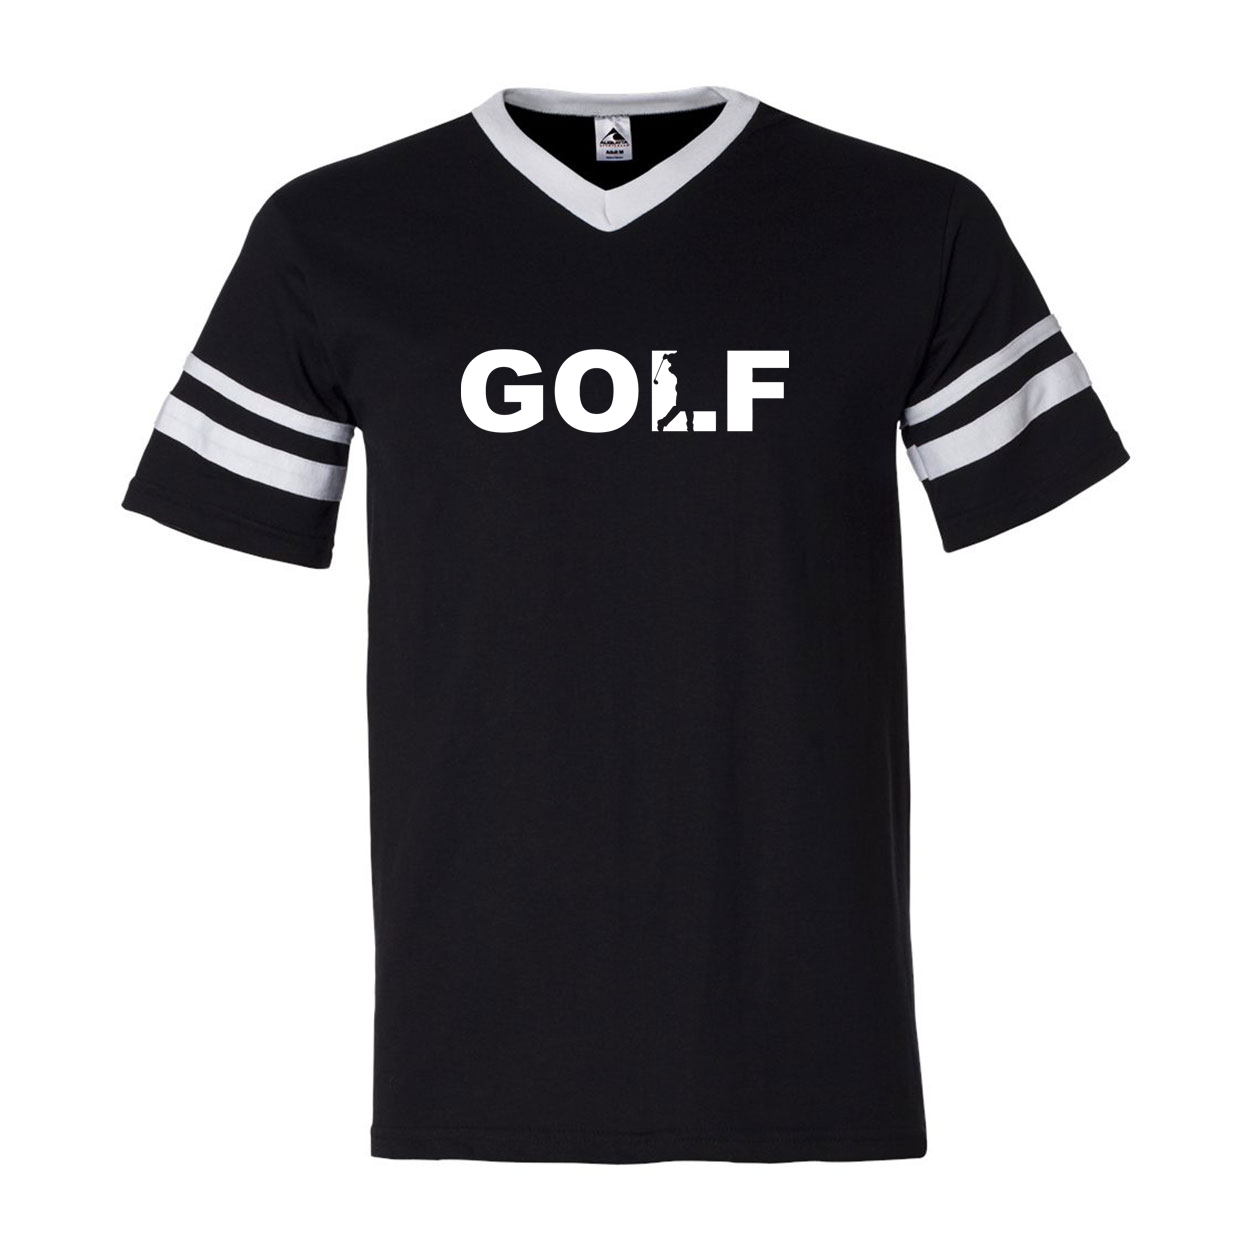 Golf Swing Logo Classic Premium Striped Jersey T-Shirt Black/White (White Logo)